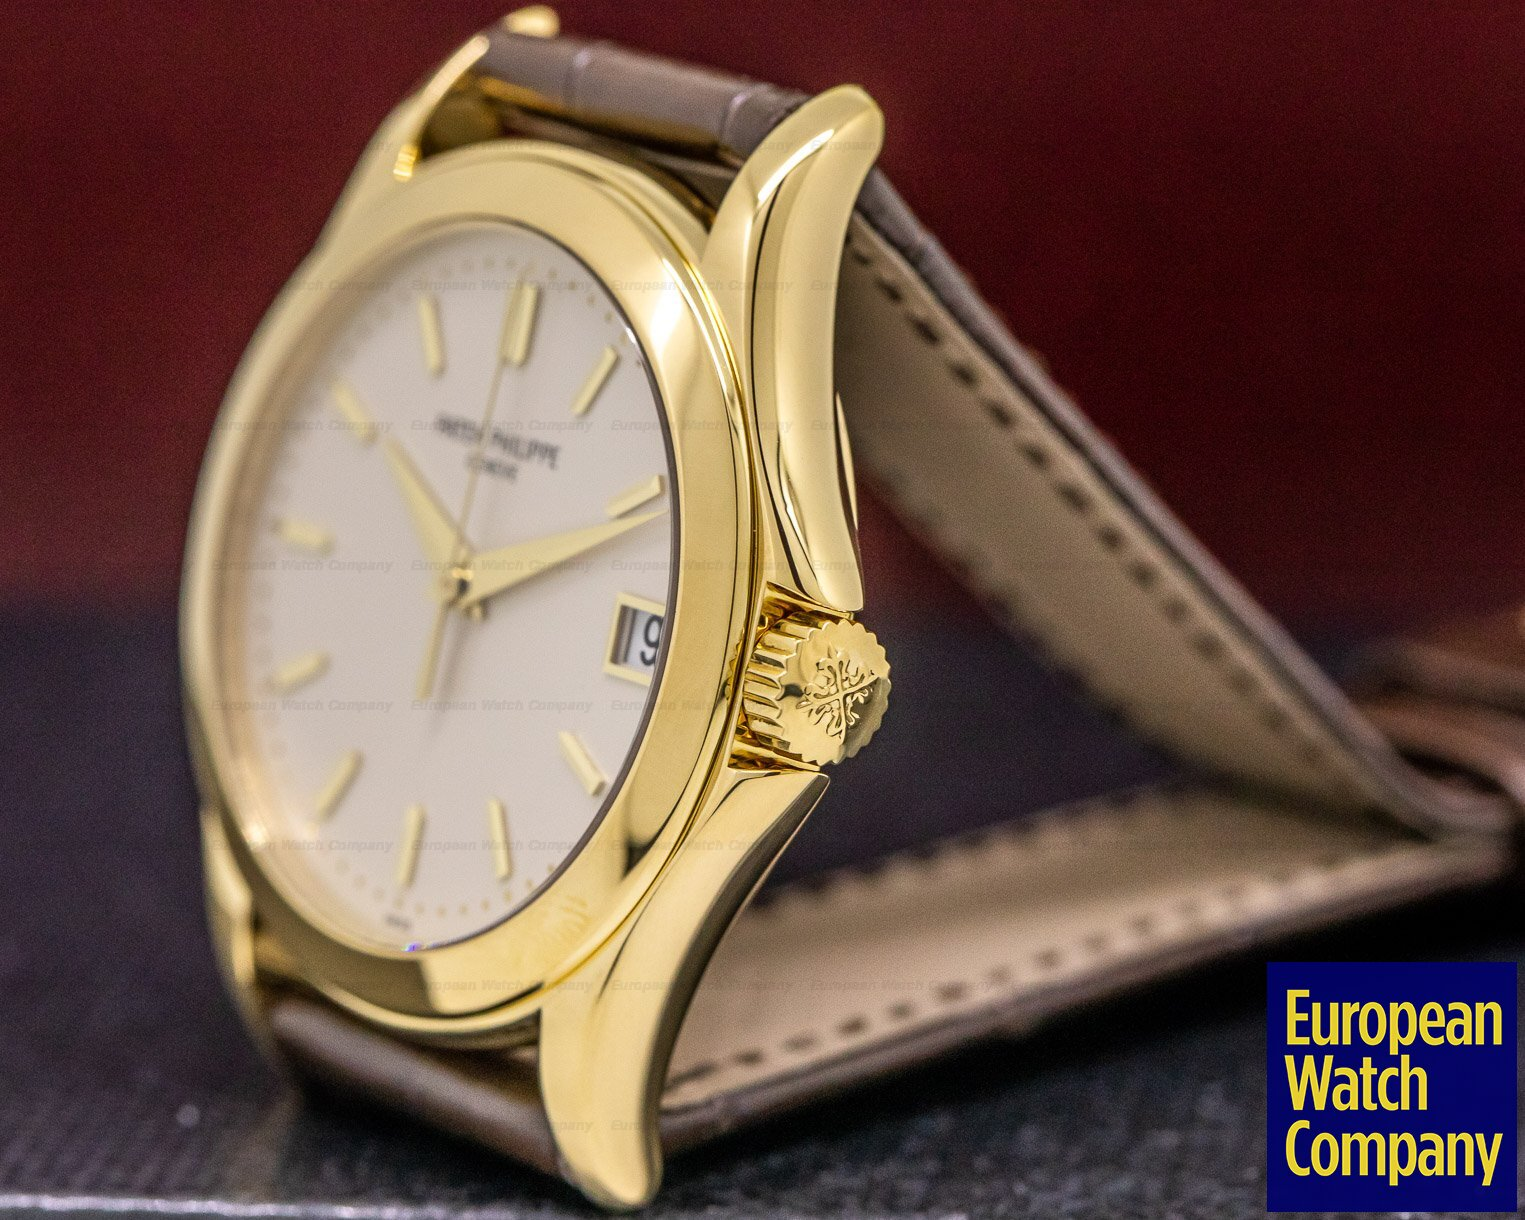 Patek Philippe 5107J-001 Calatrava Automatic 18K Yellow Gold